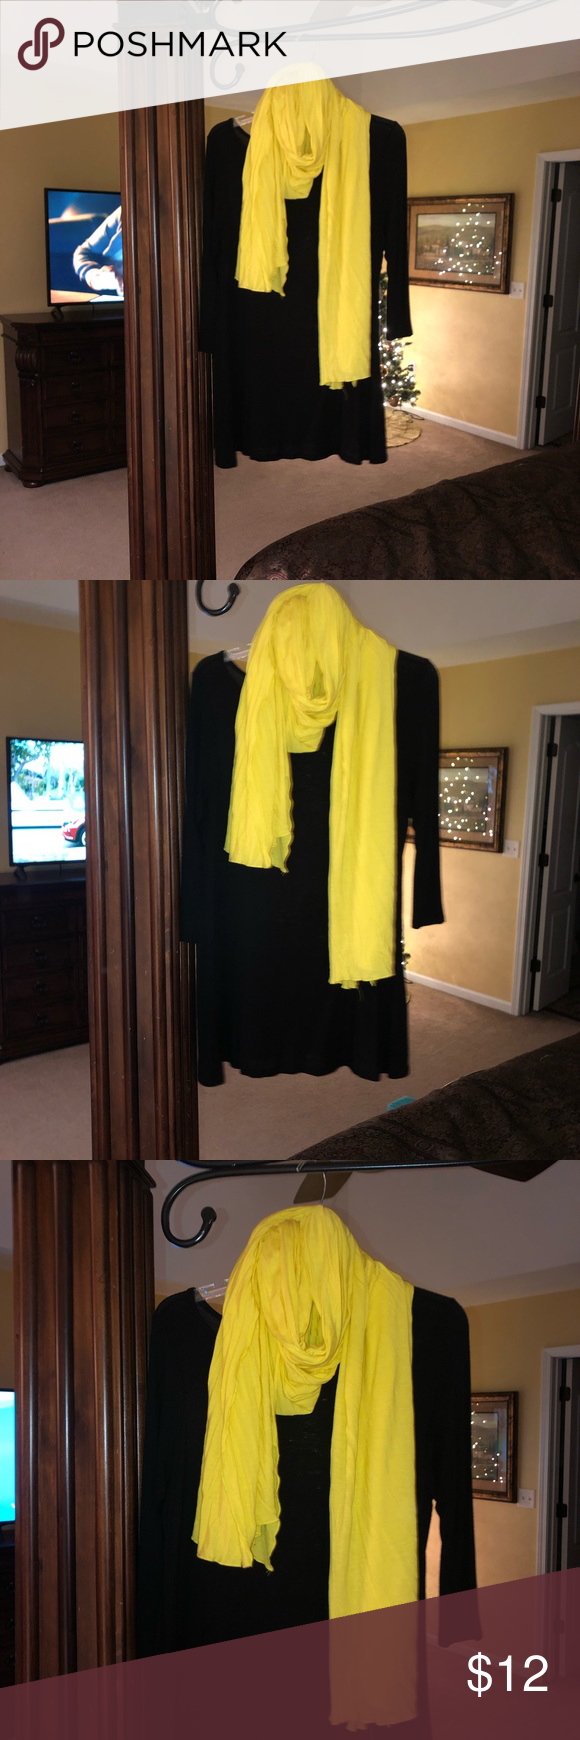 Bright Yellow Scarf EXCELLENT Condition is part of Yellow Home Accessories Shops - Worn once Smoke and pet free home